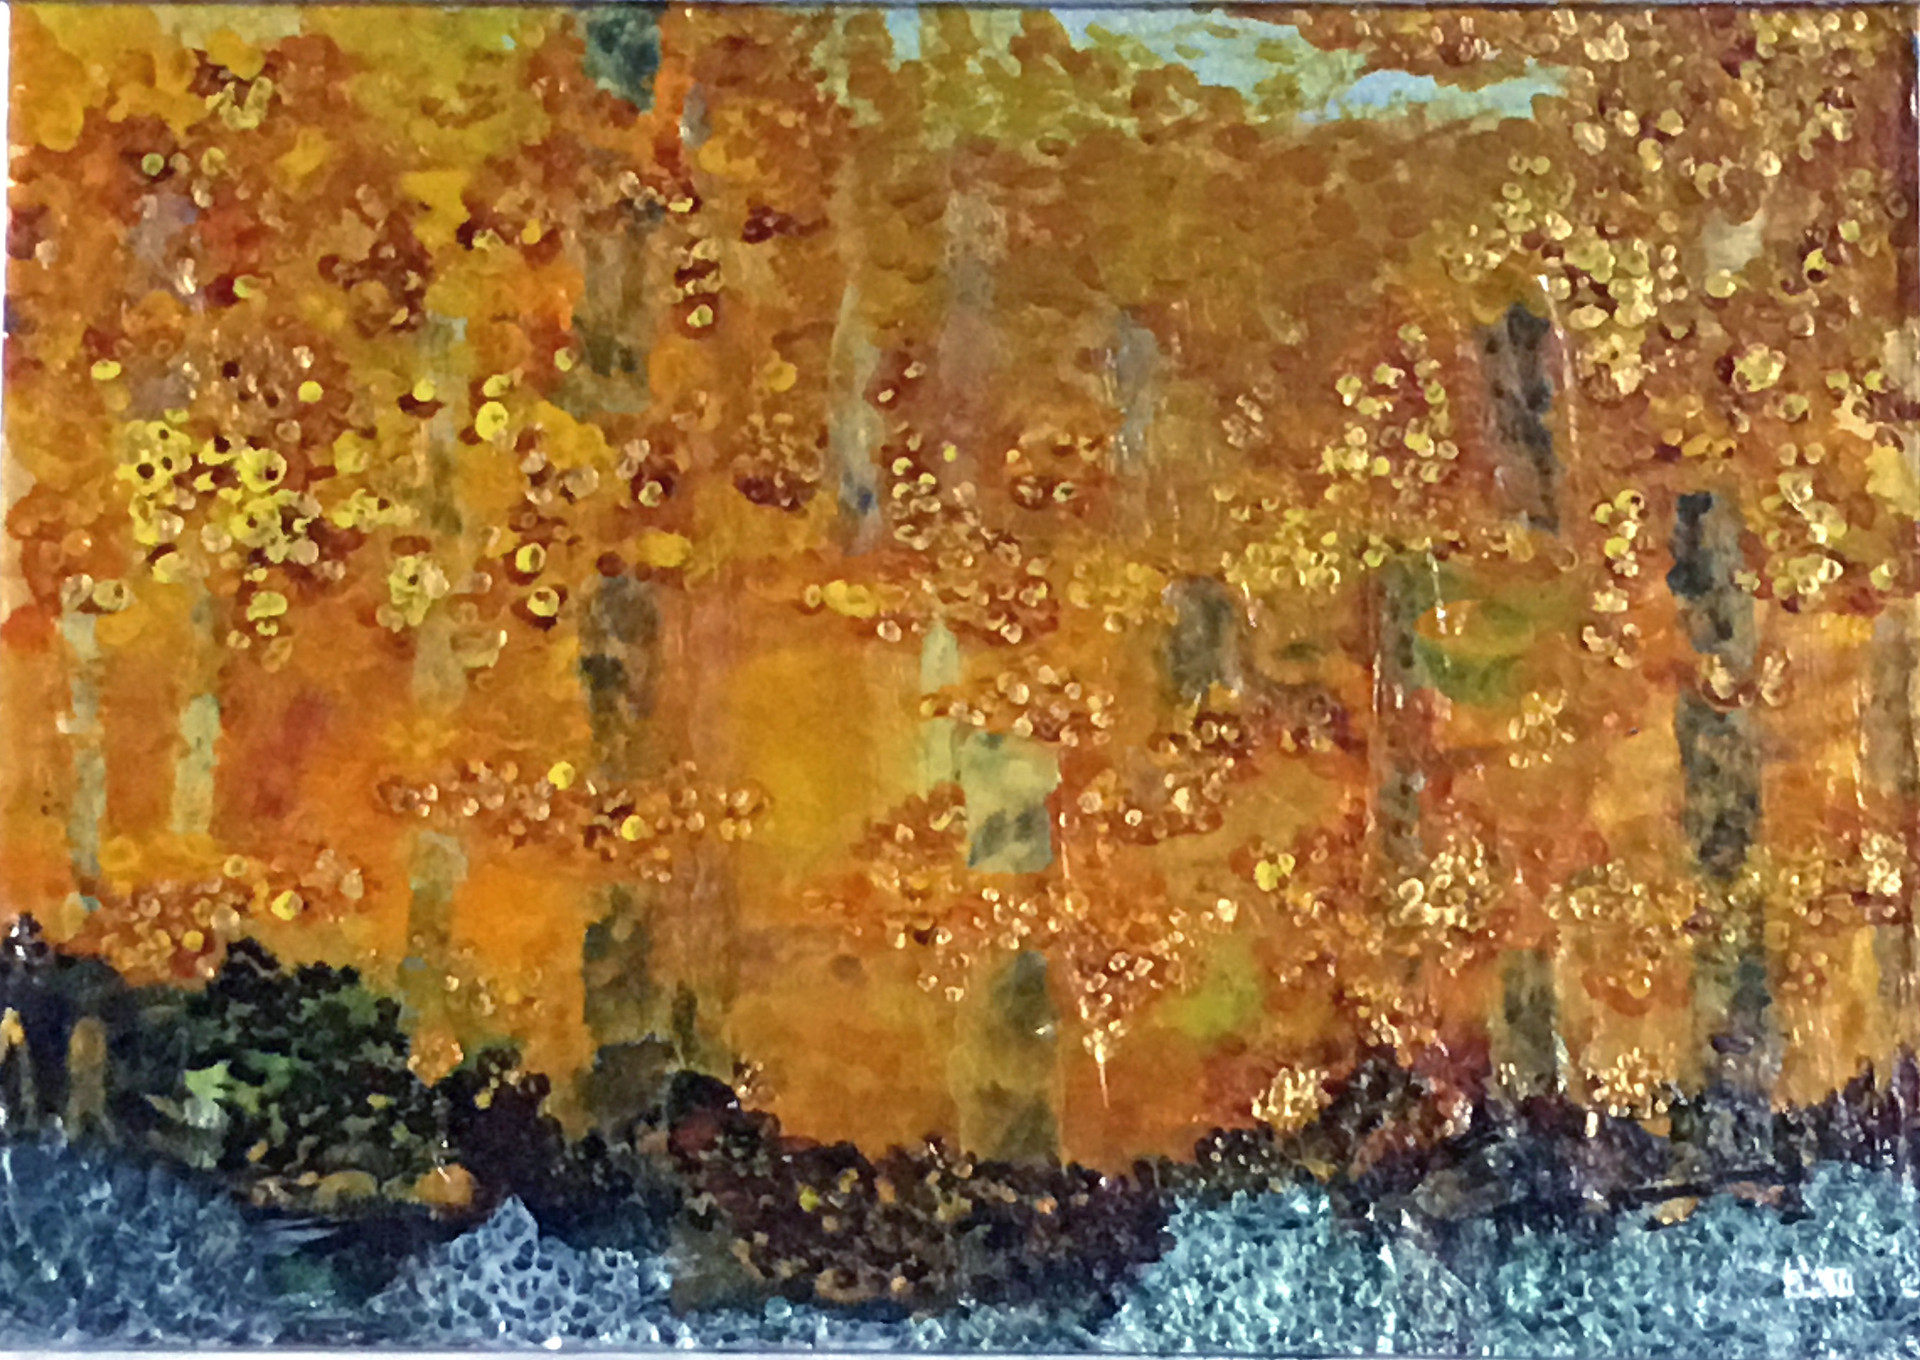 Fall in the Vienna Woods II, Homage to Klimt